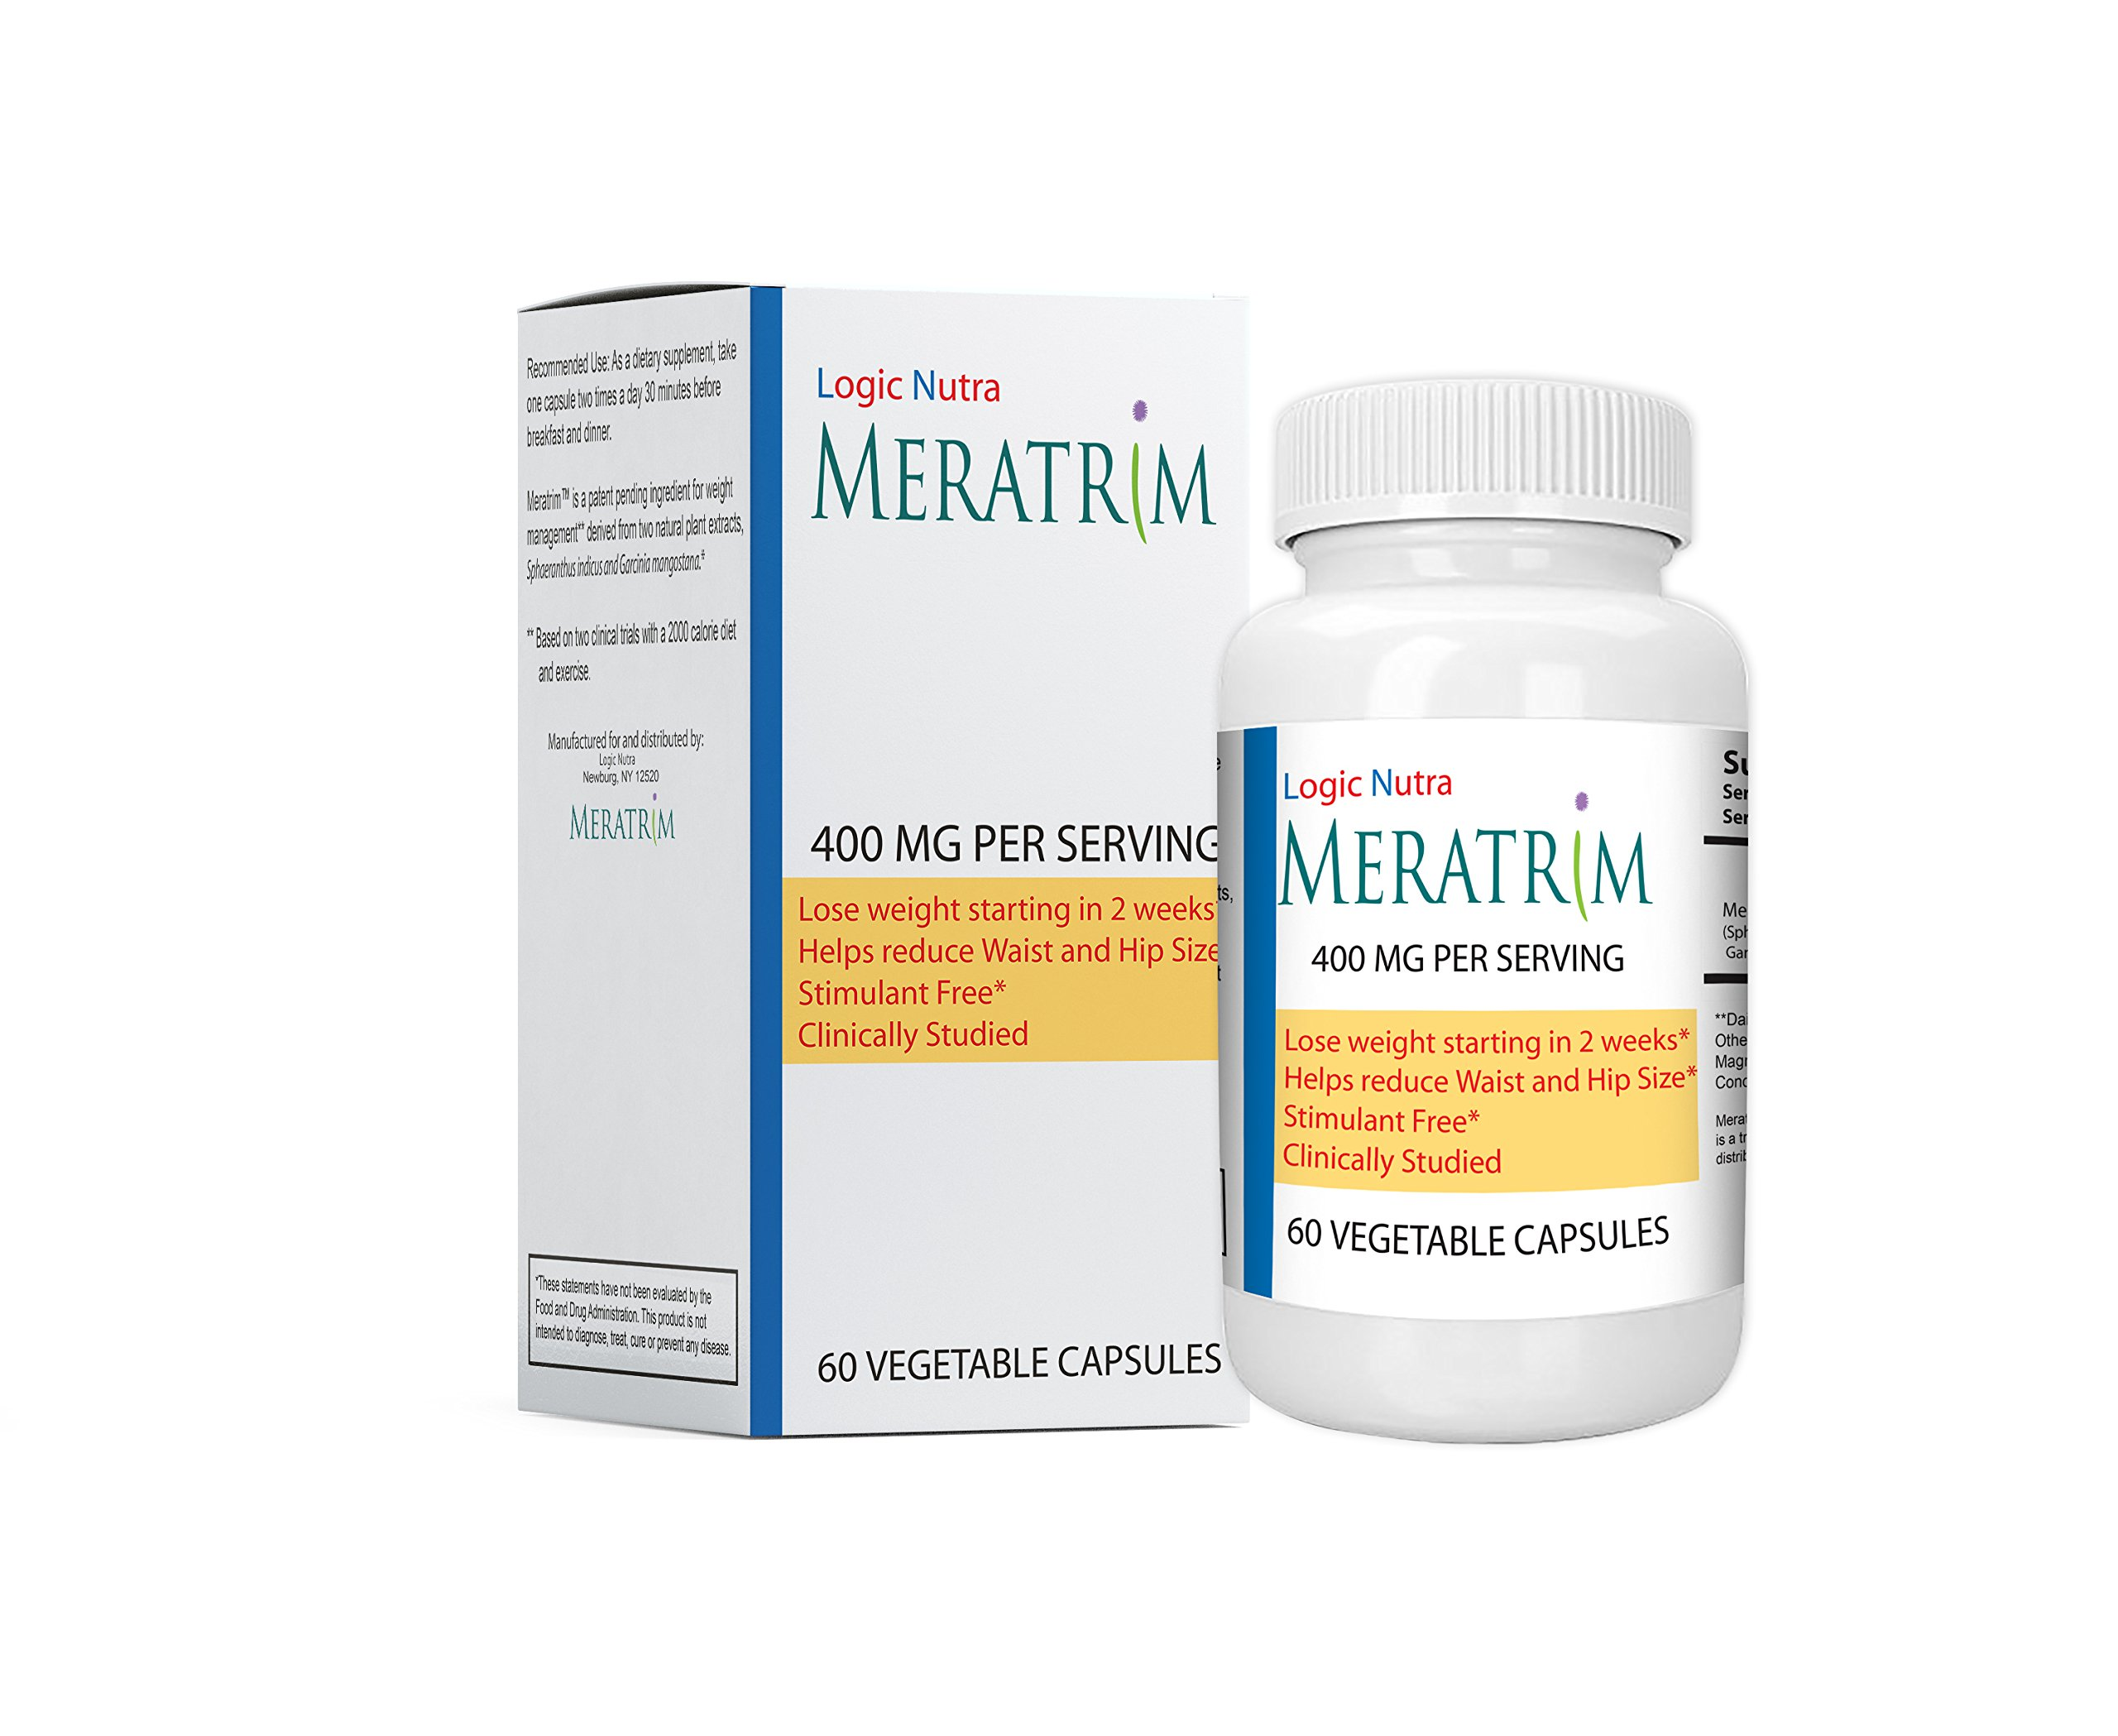 Meratrim® 400 mg 60 Fruit and flower Vegetarian Capsules Pure Weight Loss Slimming Formula 800mg Daily, Stimulant Free